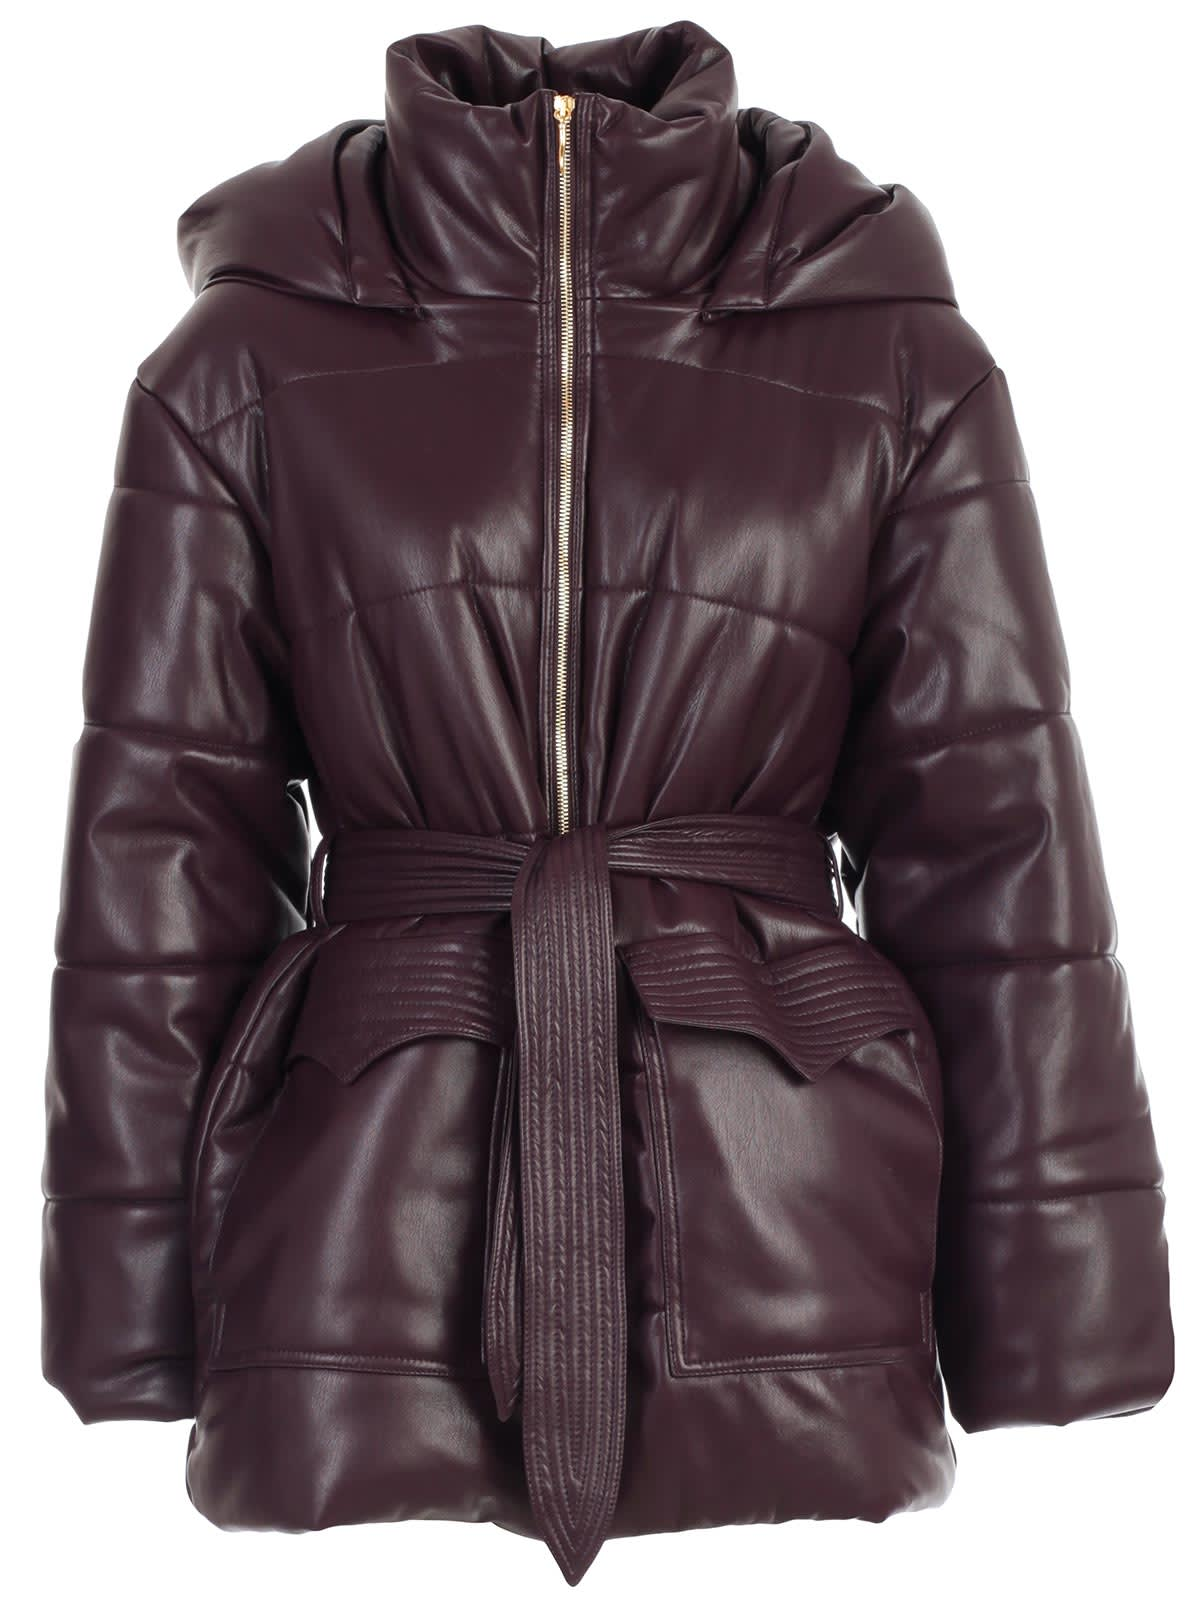 Photo of  Nanushka Padded Jacket Vegan Leather W/hood- shop Nanushka jackets online sales